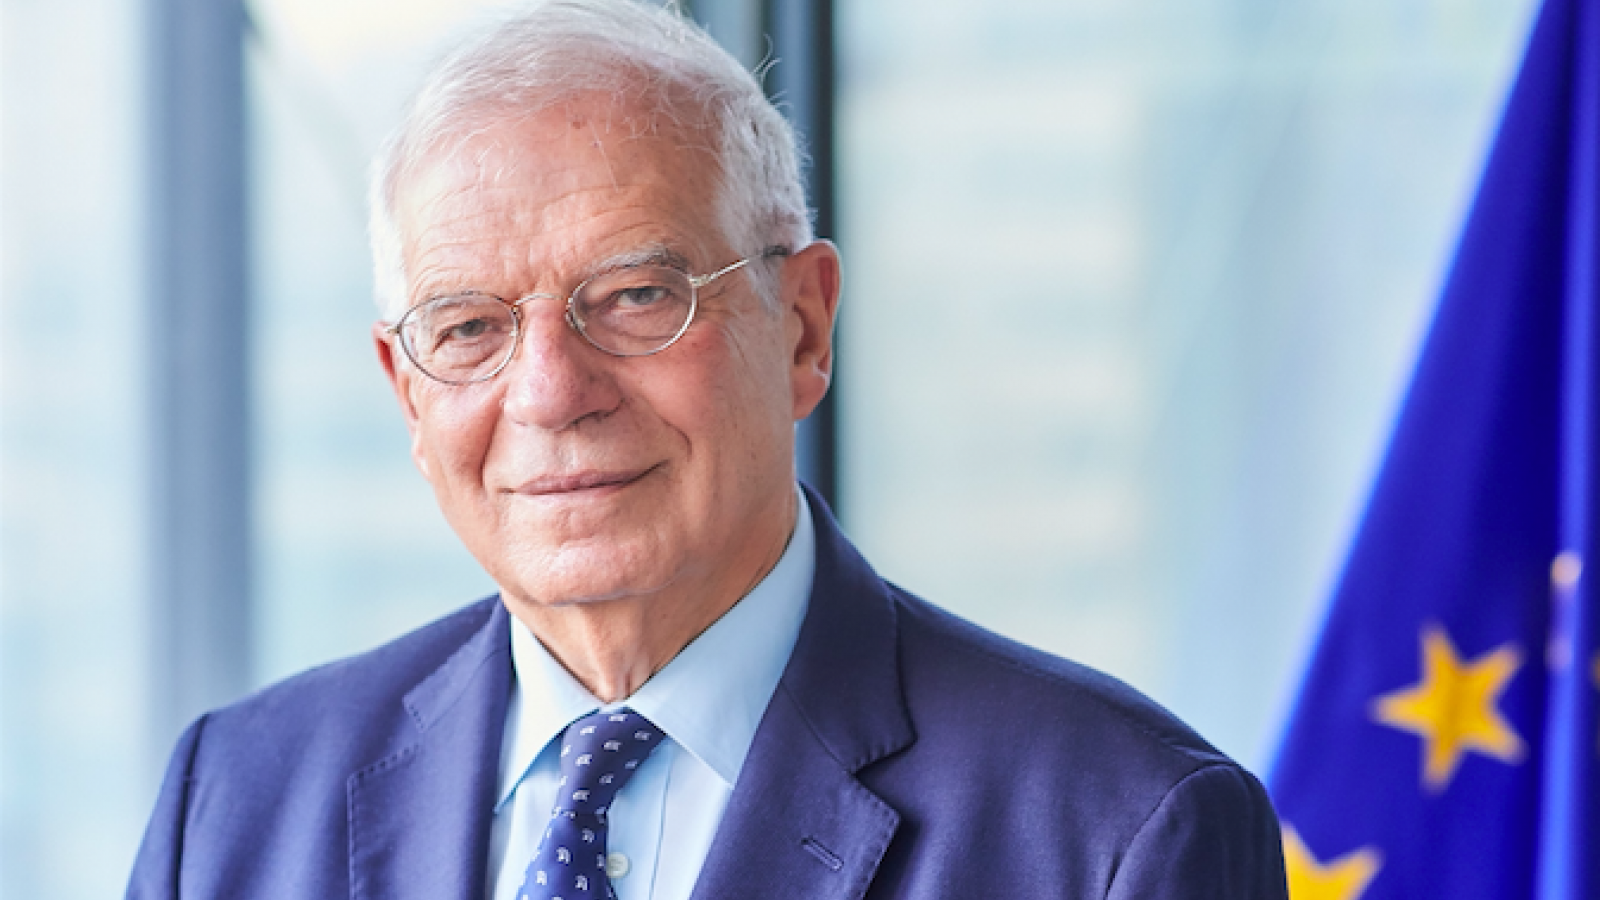 Borrell: It is important that we continue to encourage positive developments with Turkey